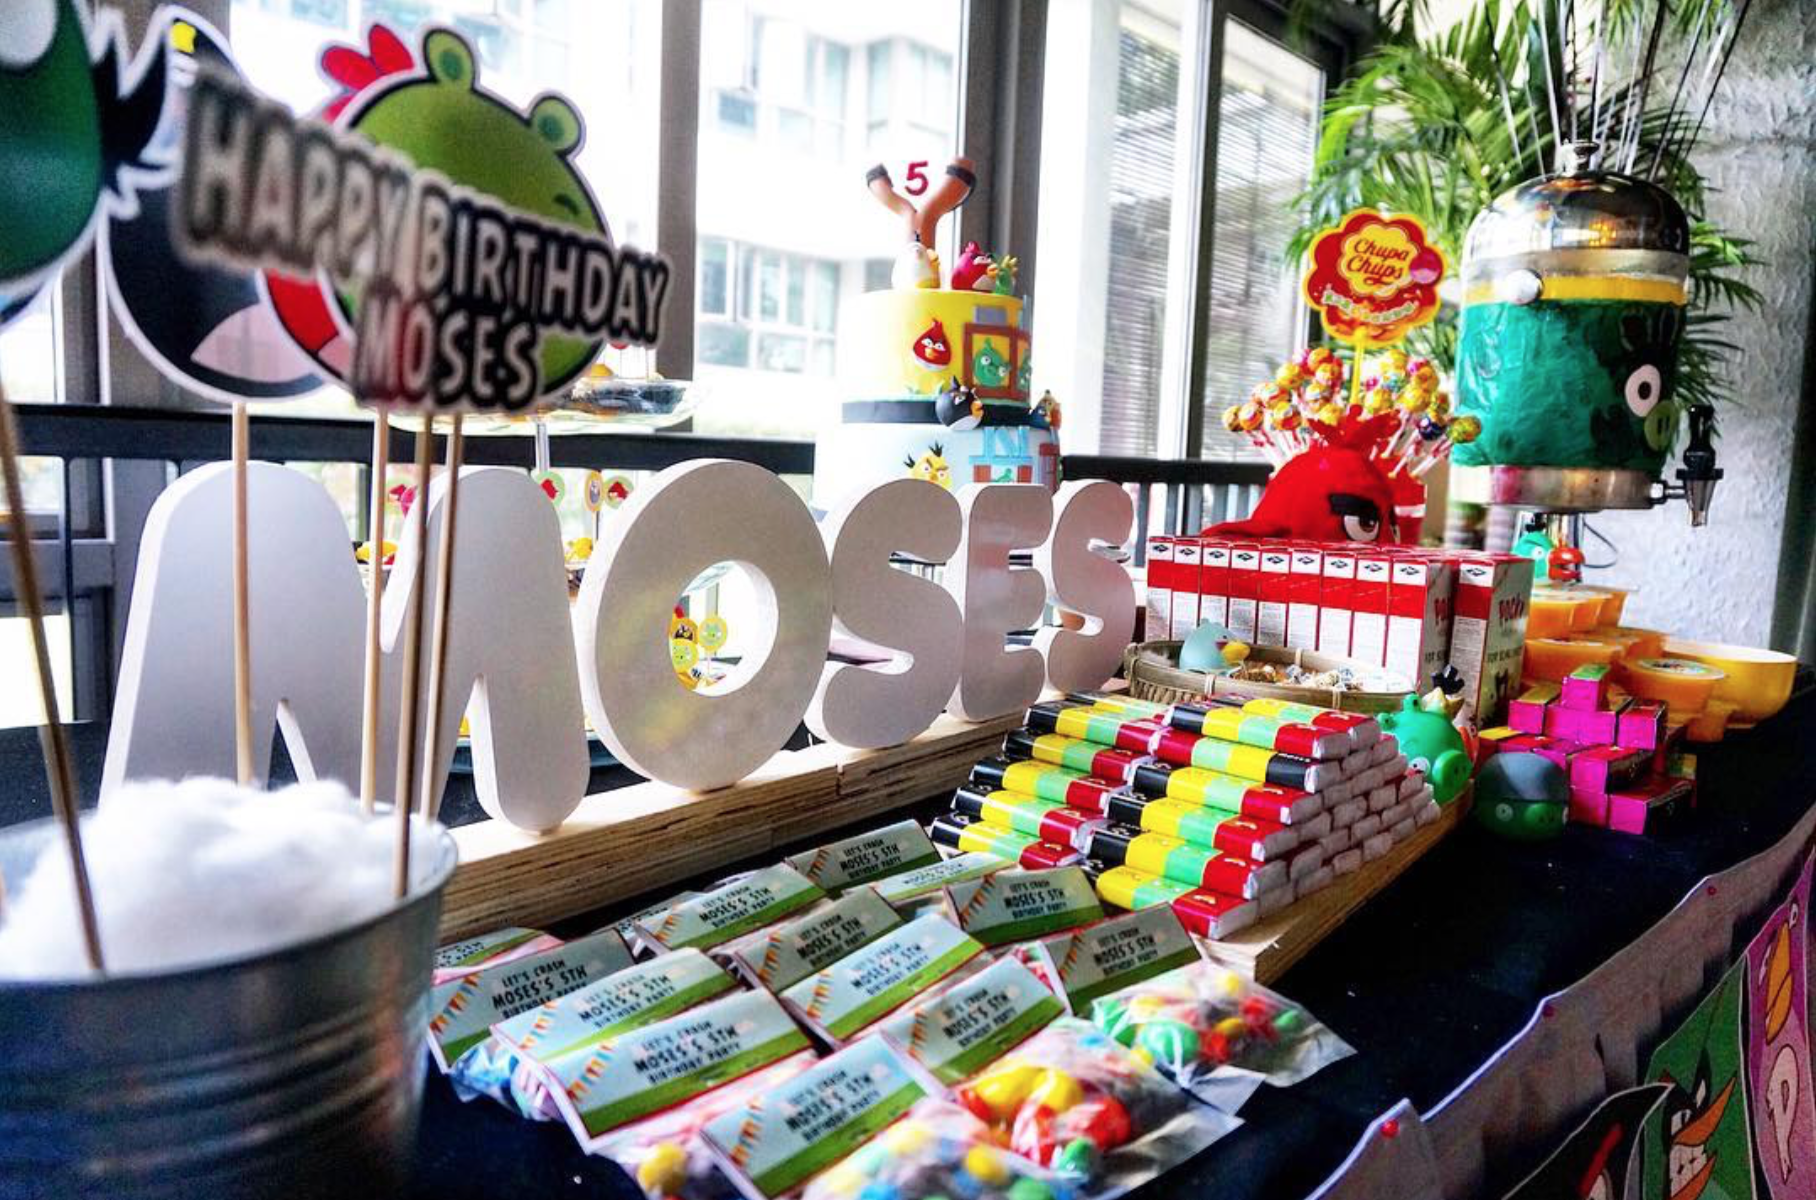 angry-bird-pig-slingshot-theme-birthday-party-ideas-supplies-goodie-bag-pack-decoration-malaysia-planner-murah-kitkat-gamer-lollipop-candy-buffet